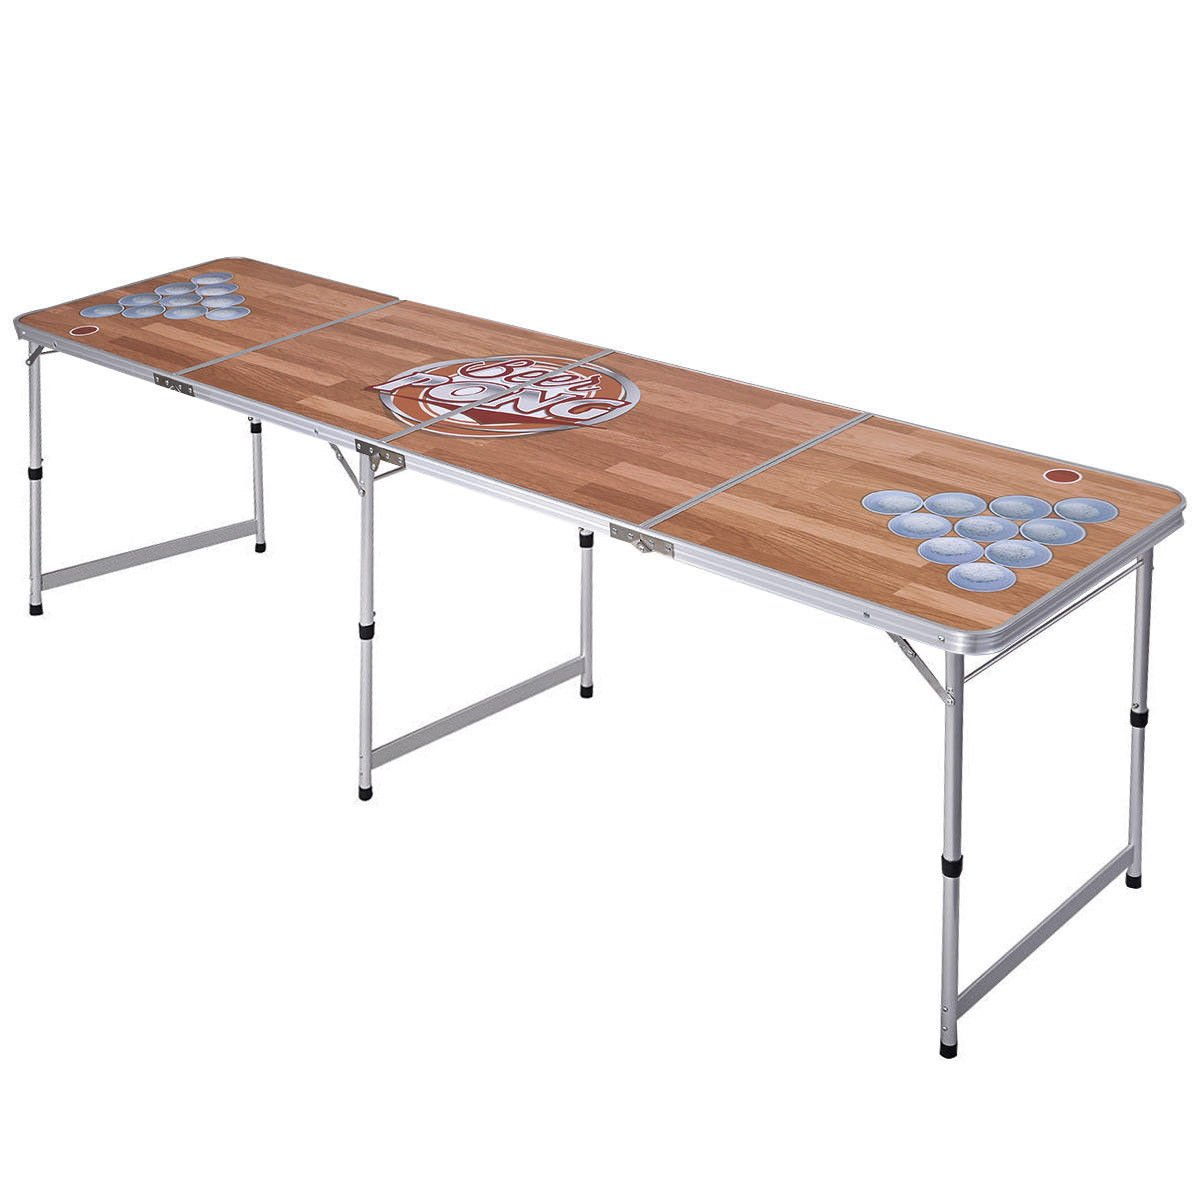 Amazon Com Ghp 8 Ft Long Folding Aluminum Frame Mdf Table Adjustable Height Top Beer Pong Table Sports Outdoors